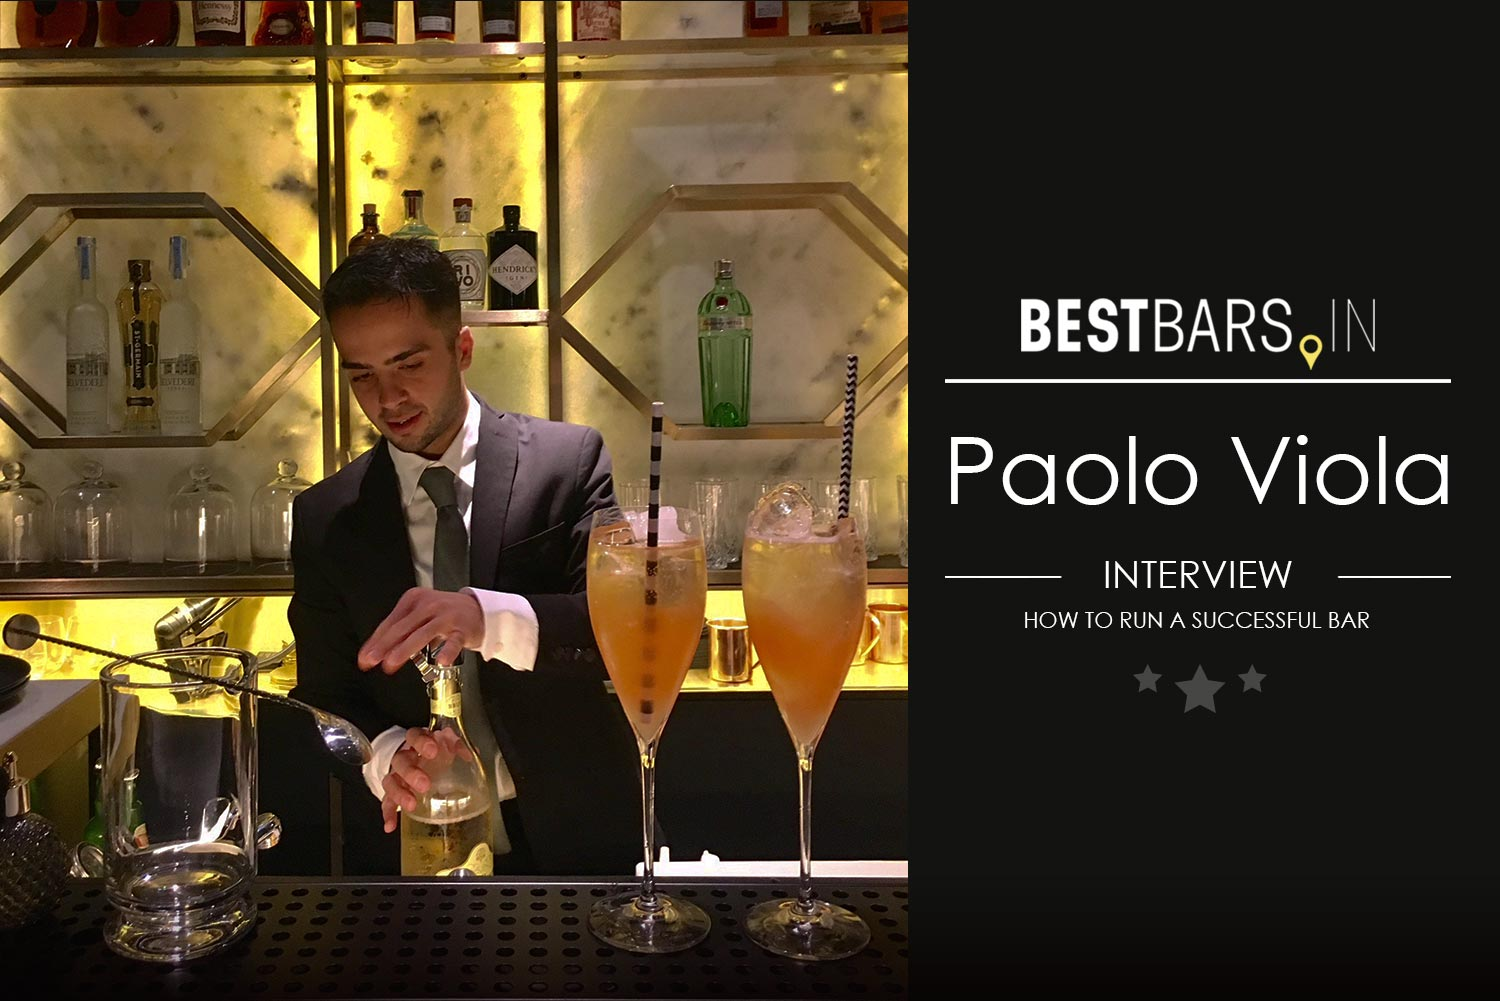 Paolo Viola - how to run a successful bar